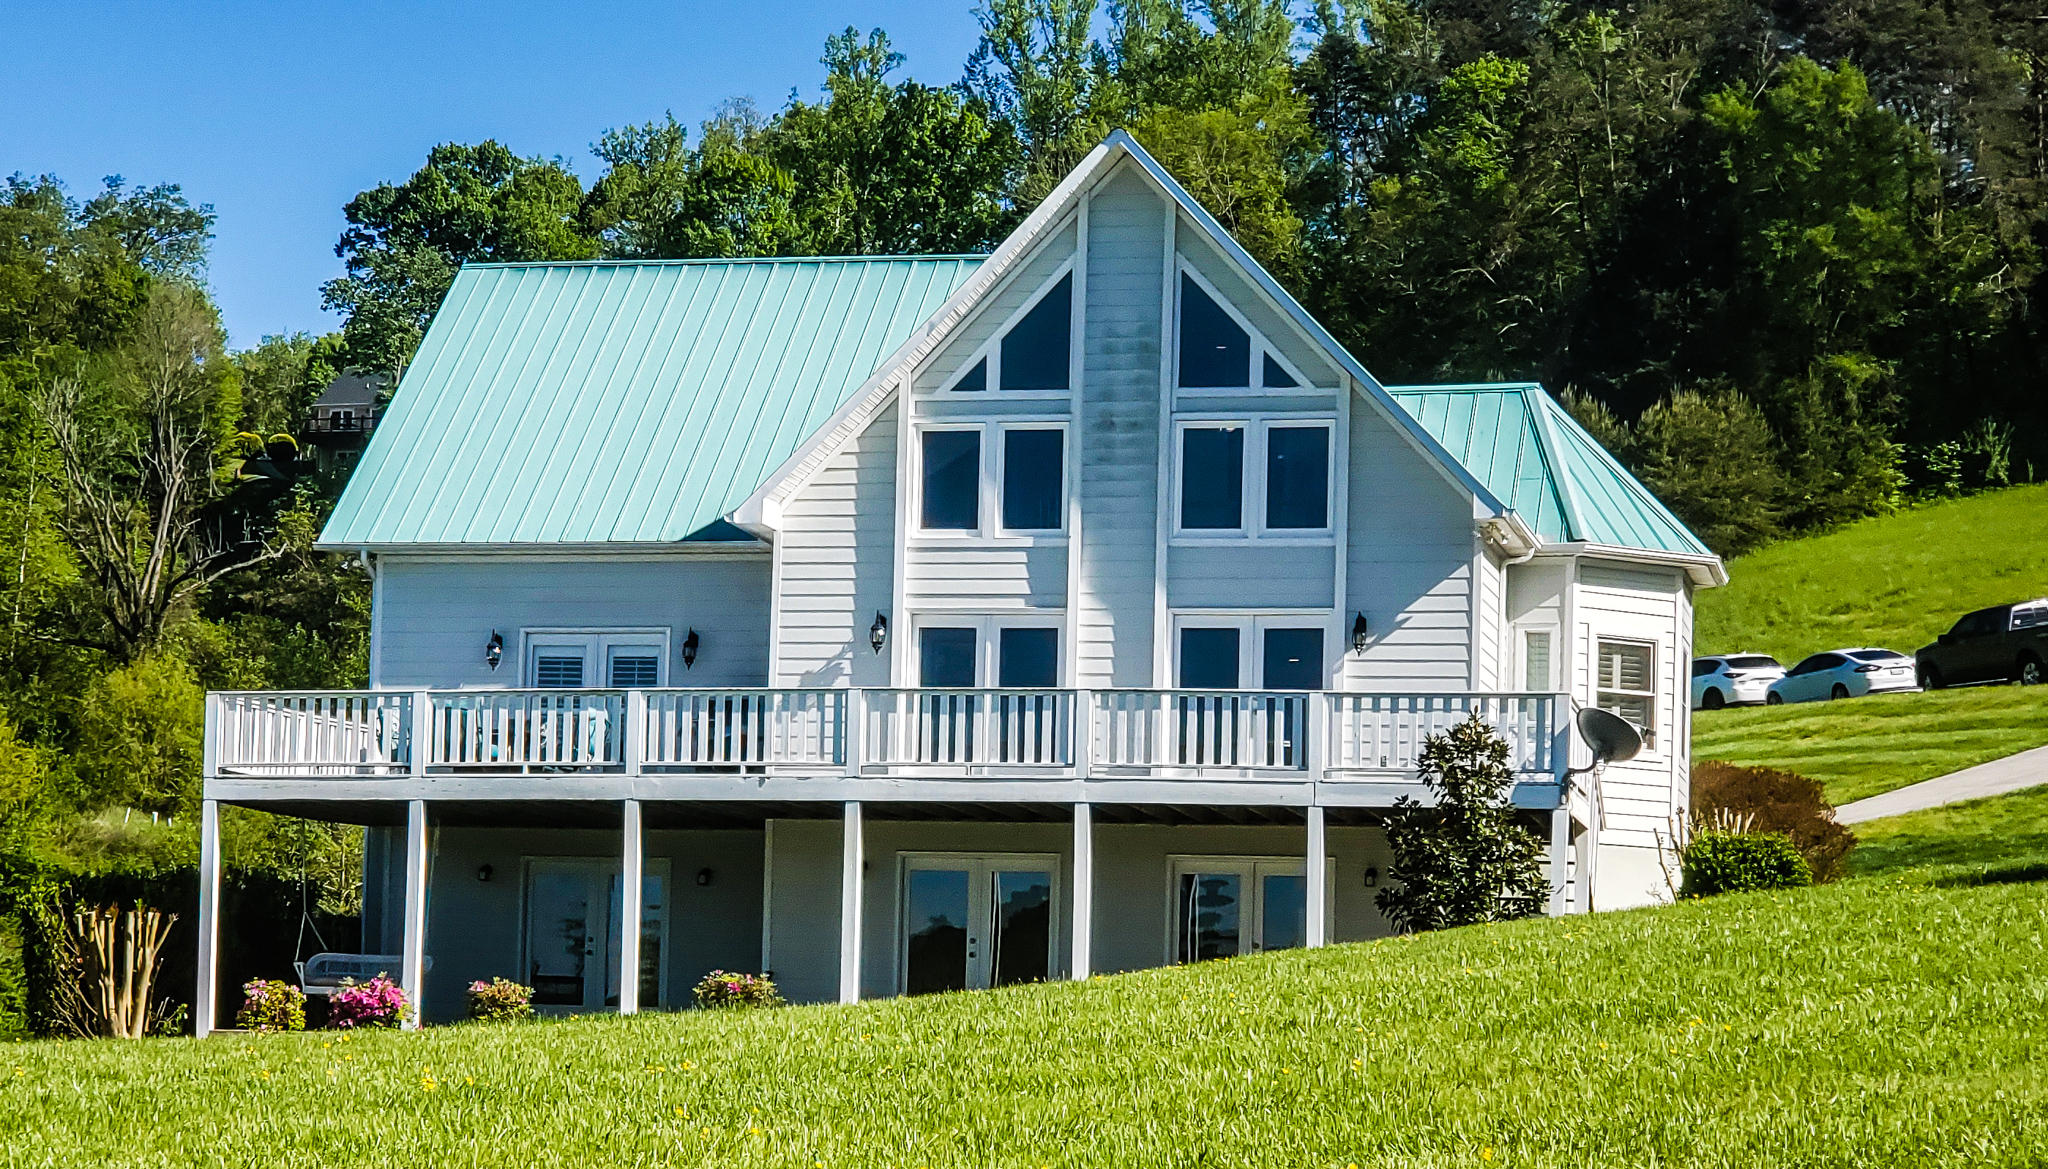 2440 Russell Bros Rd: